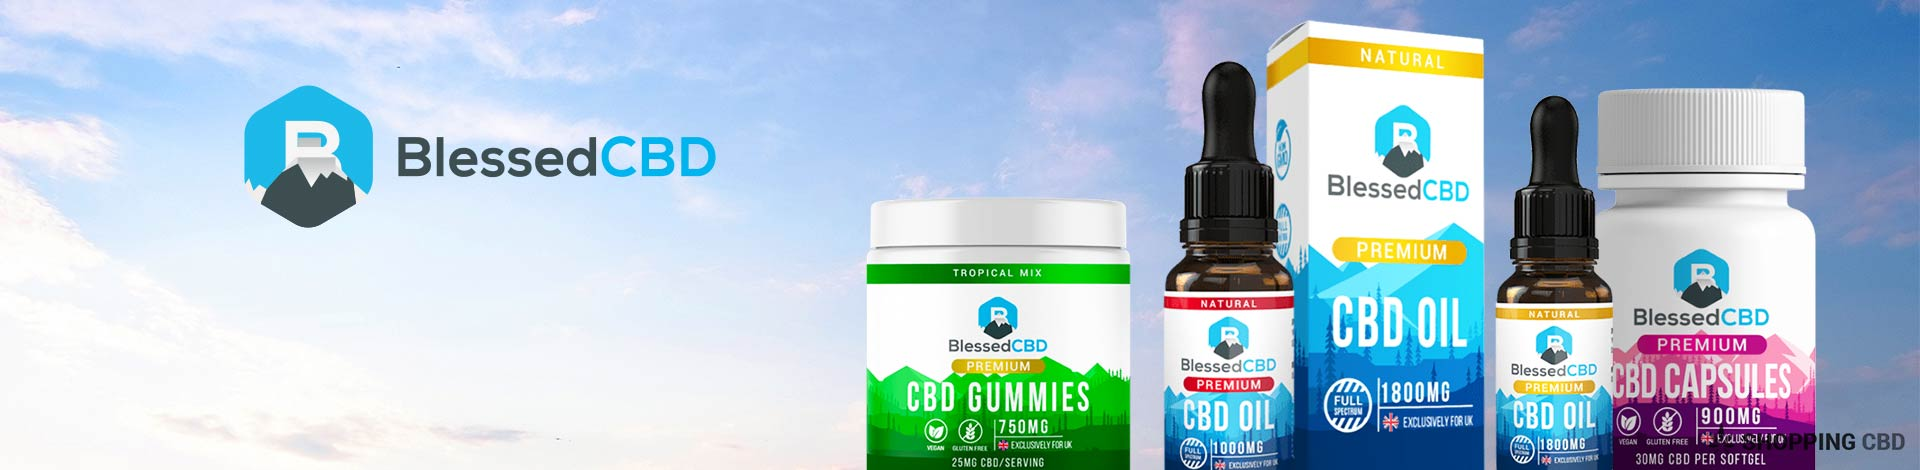 Blessed CBD Review